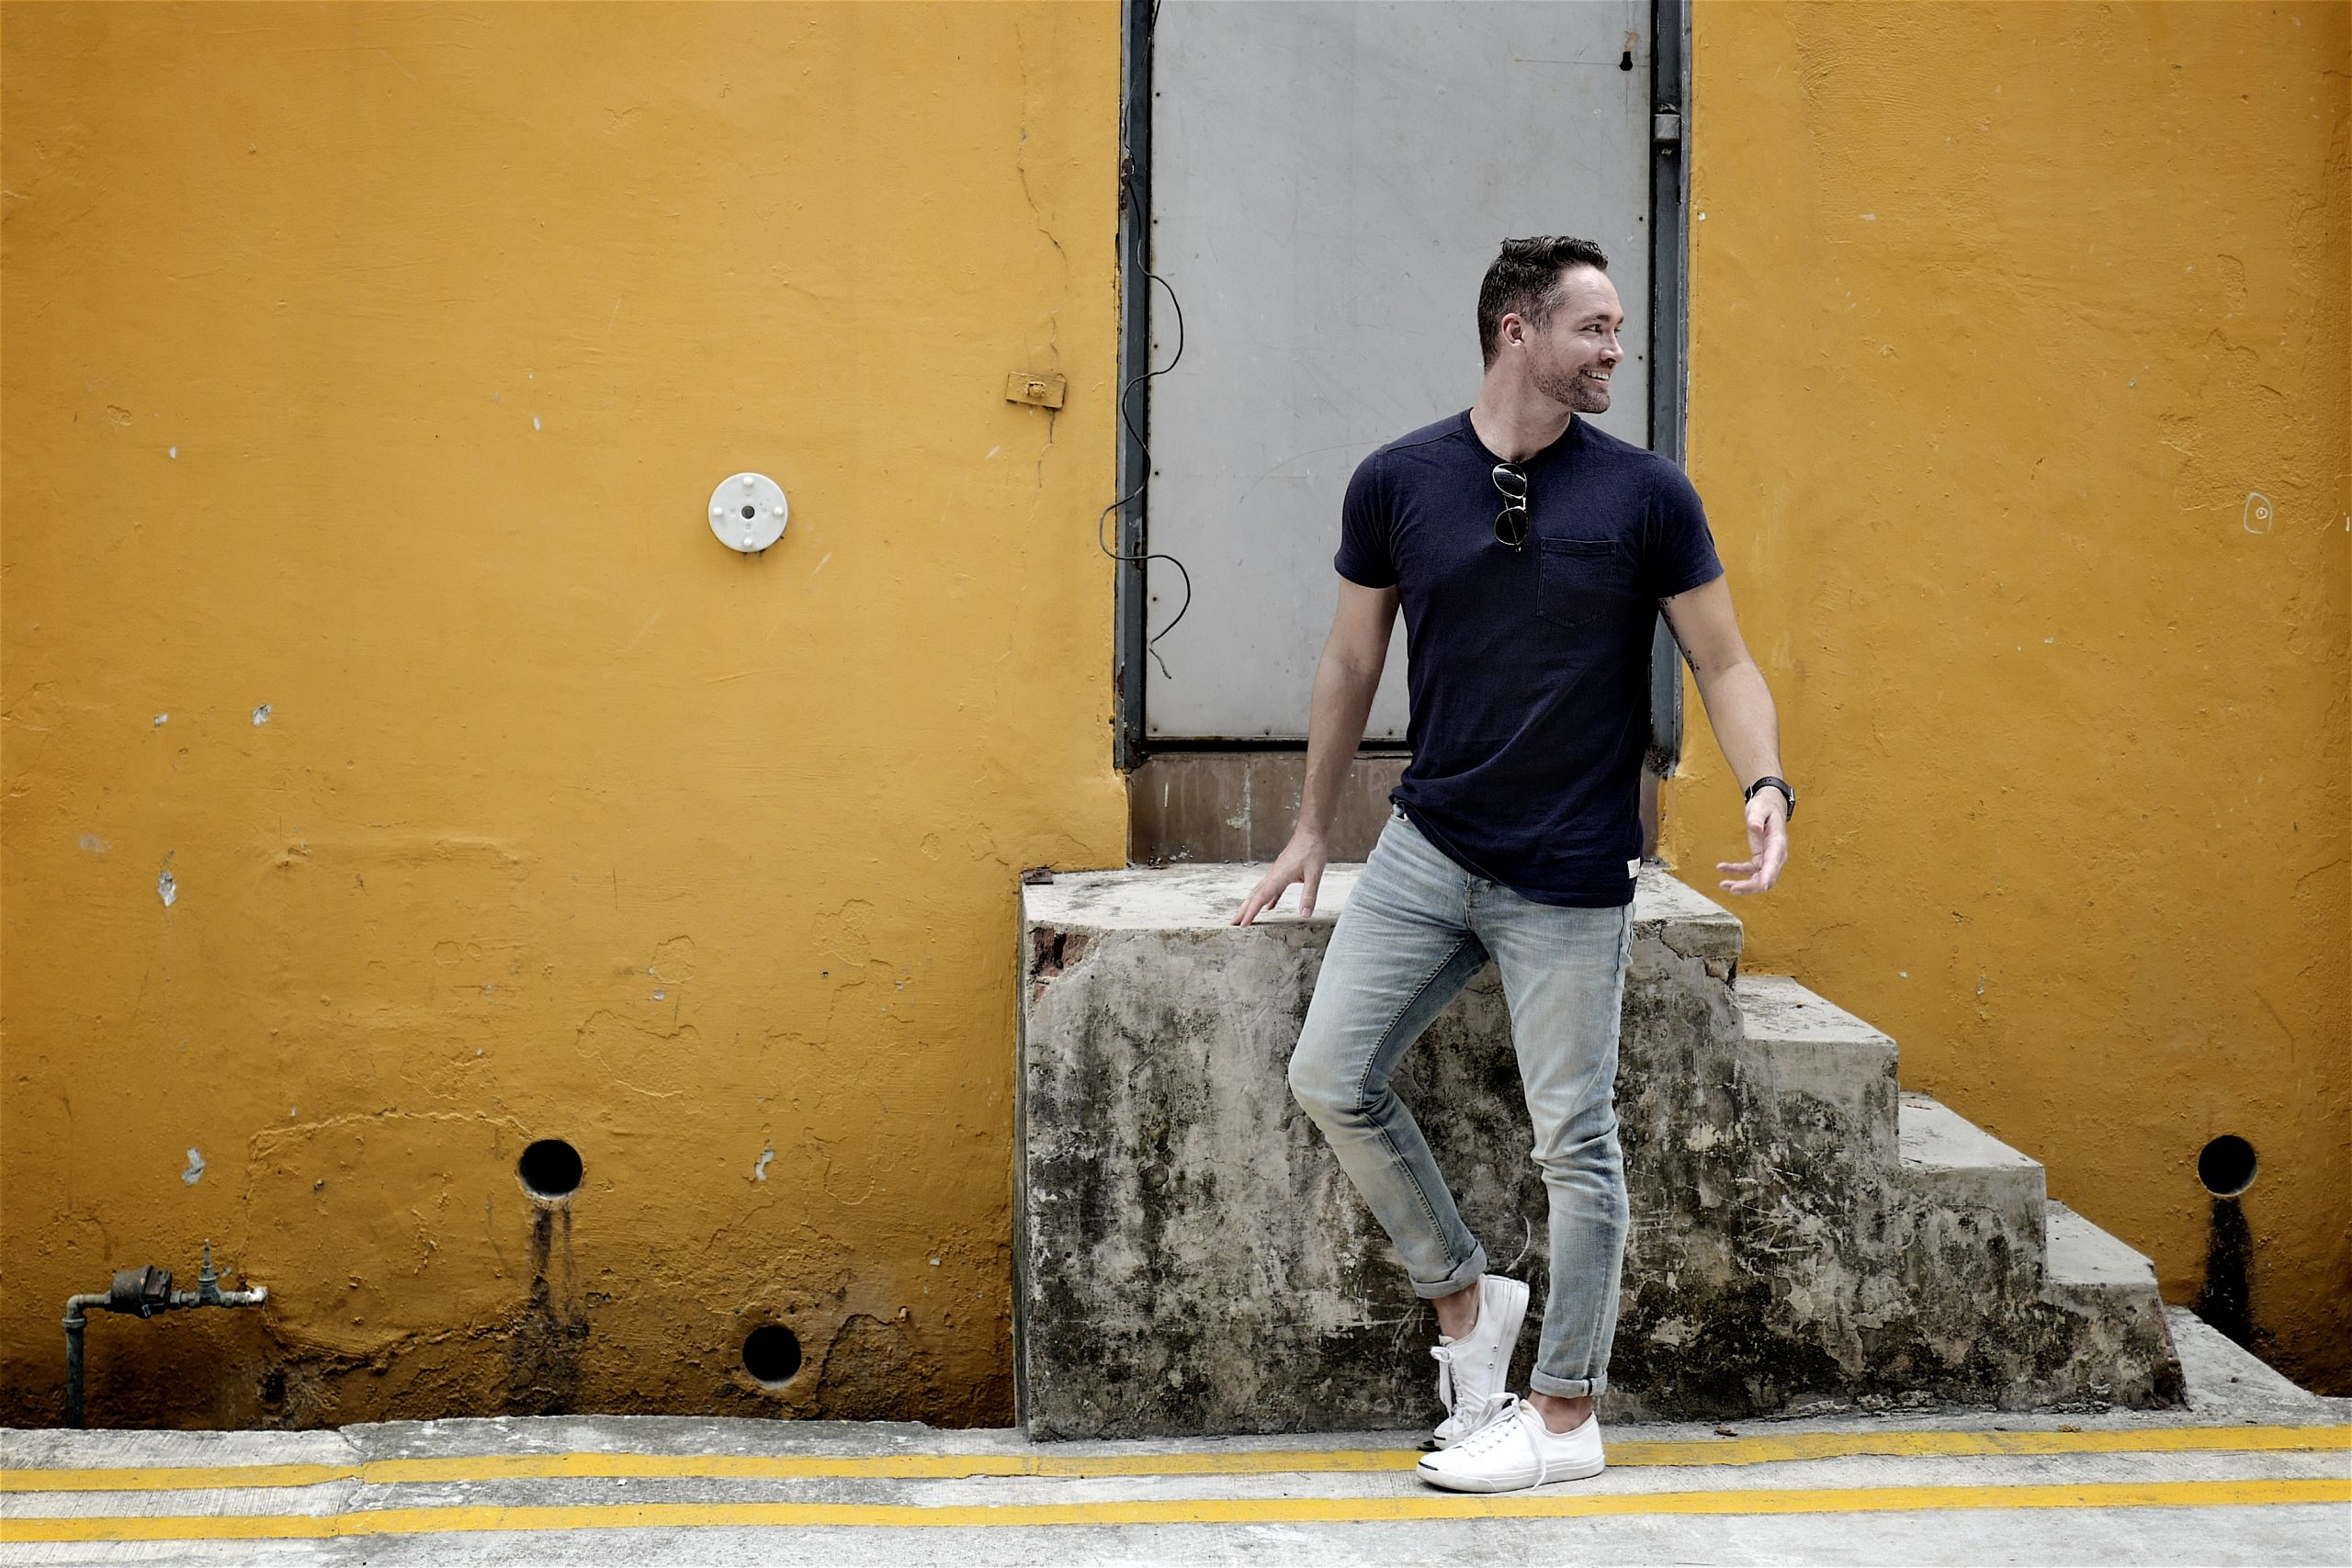 Peter Thew, Co-Founder of Yoga Movement On: Building The Largest Independent Chain Of Yoga Studios In Singapore